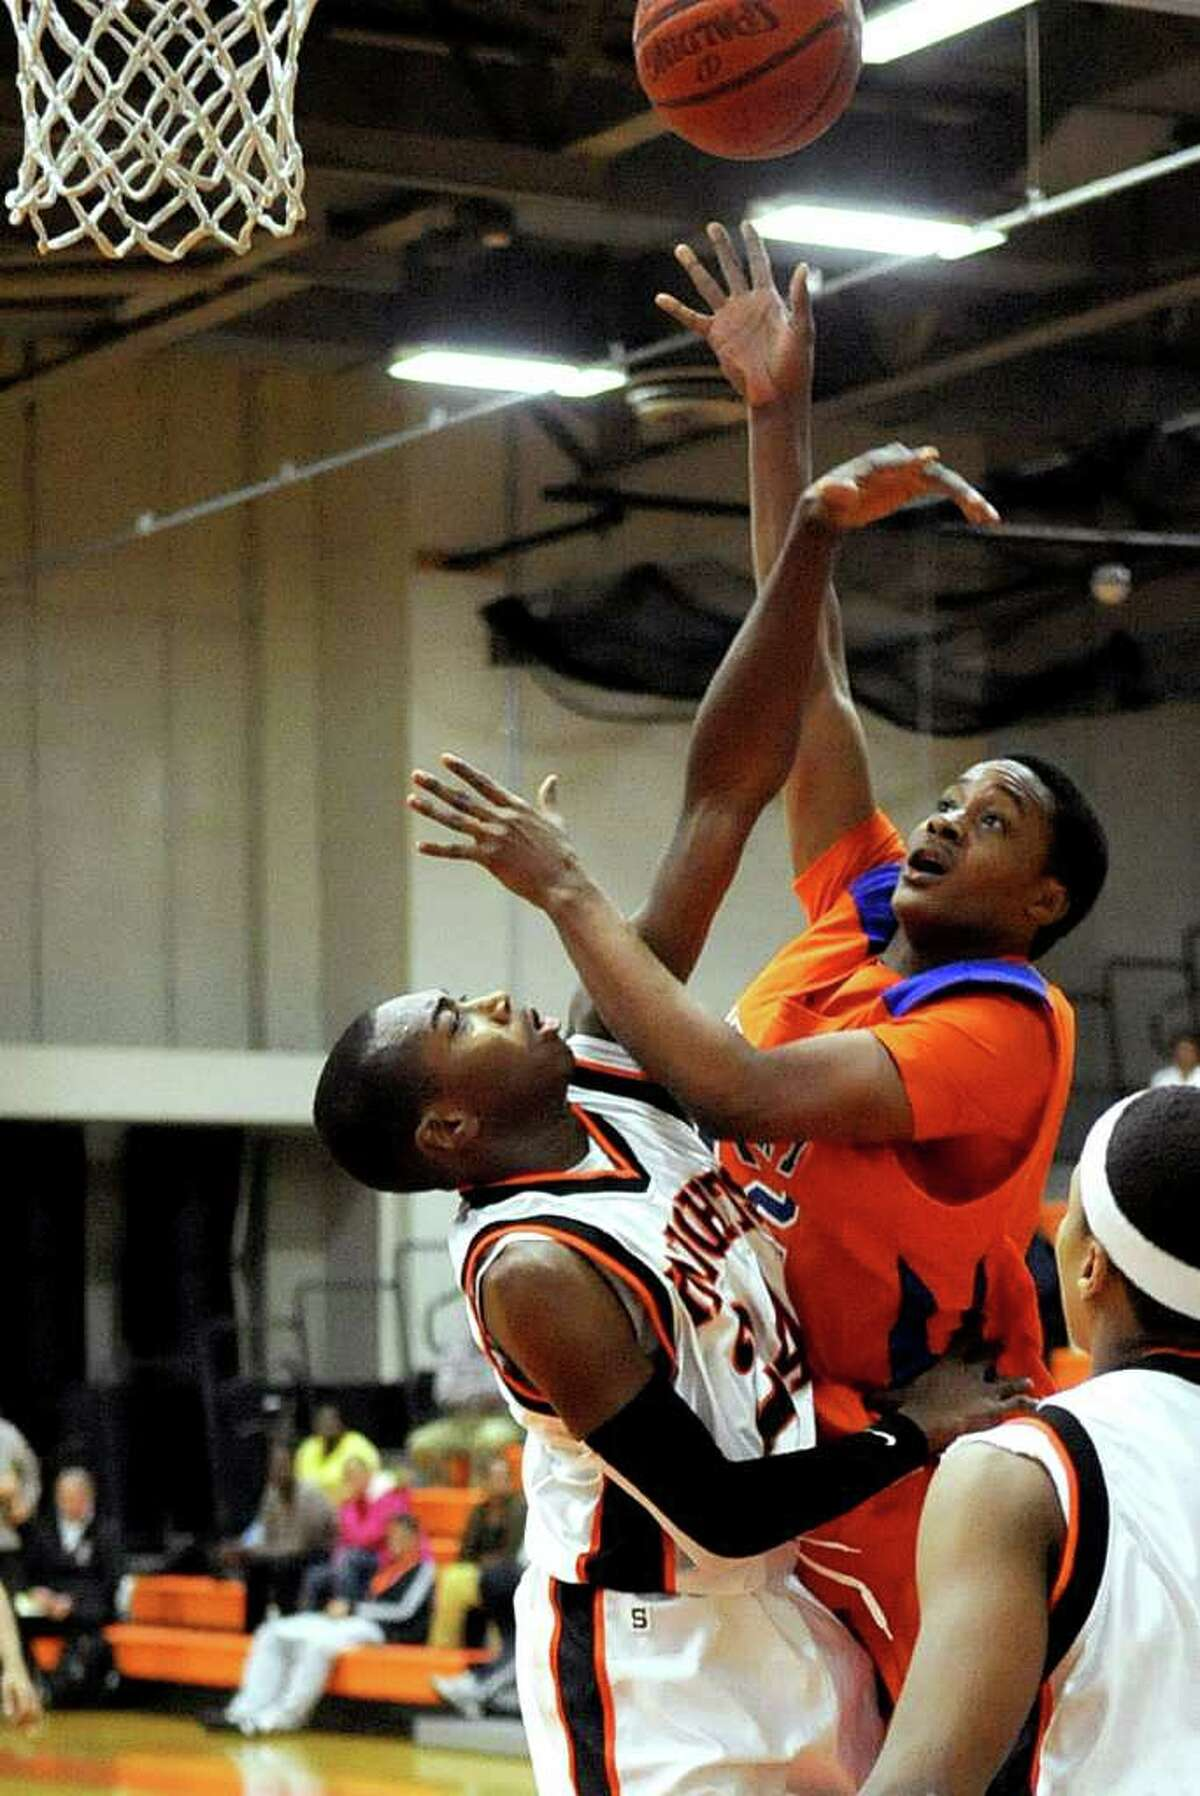 Danbury's C.J. Neptune looks for a basket as he is defended by Stamford's Kenny Wright during Friday's game in Stamford on January 27, 2012.